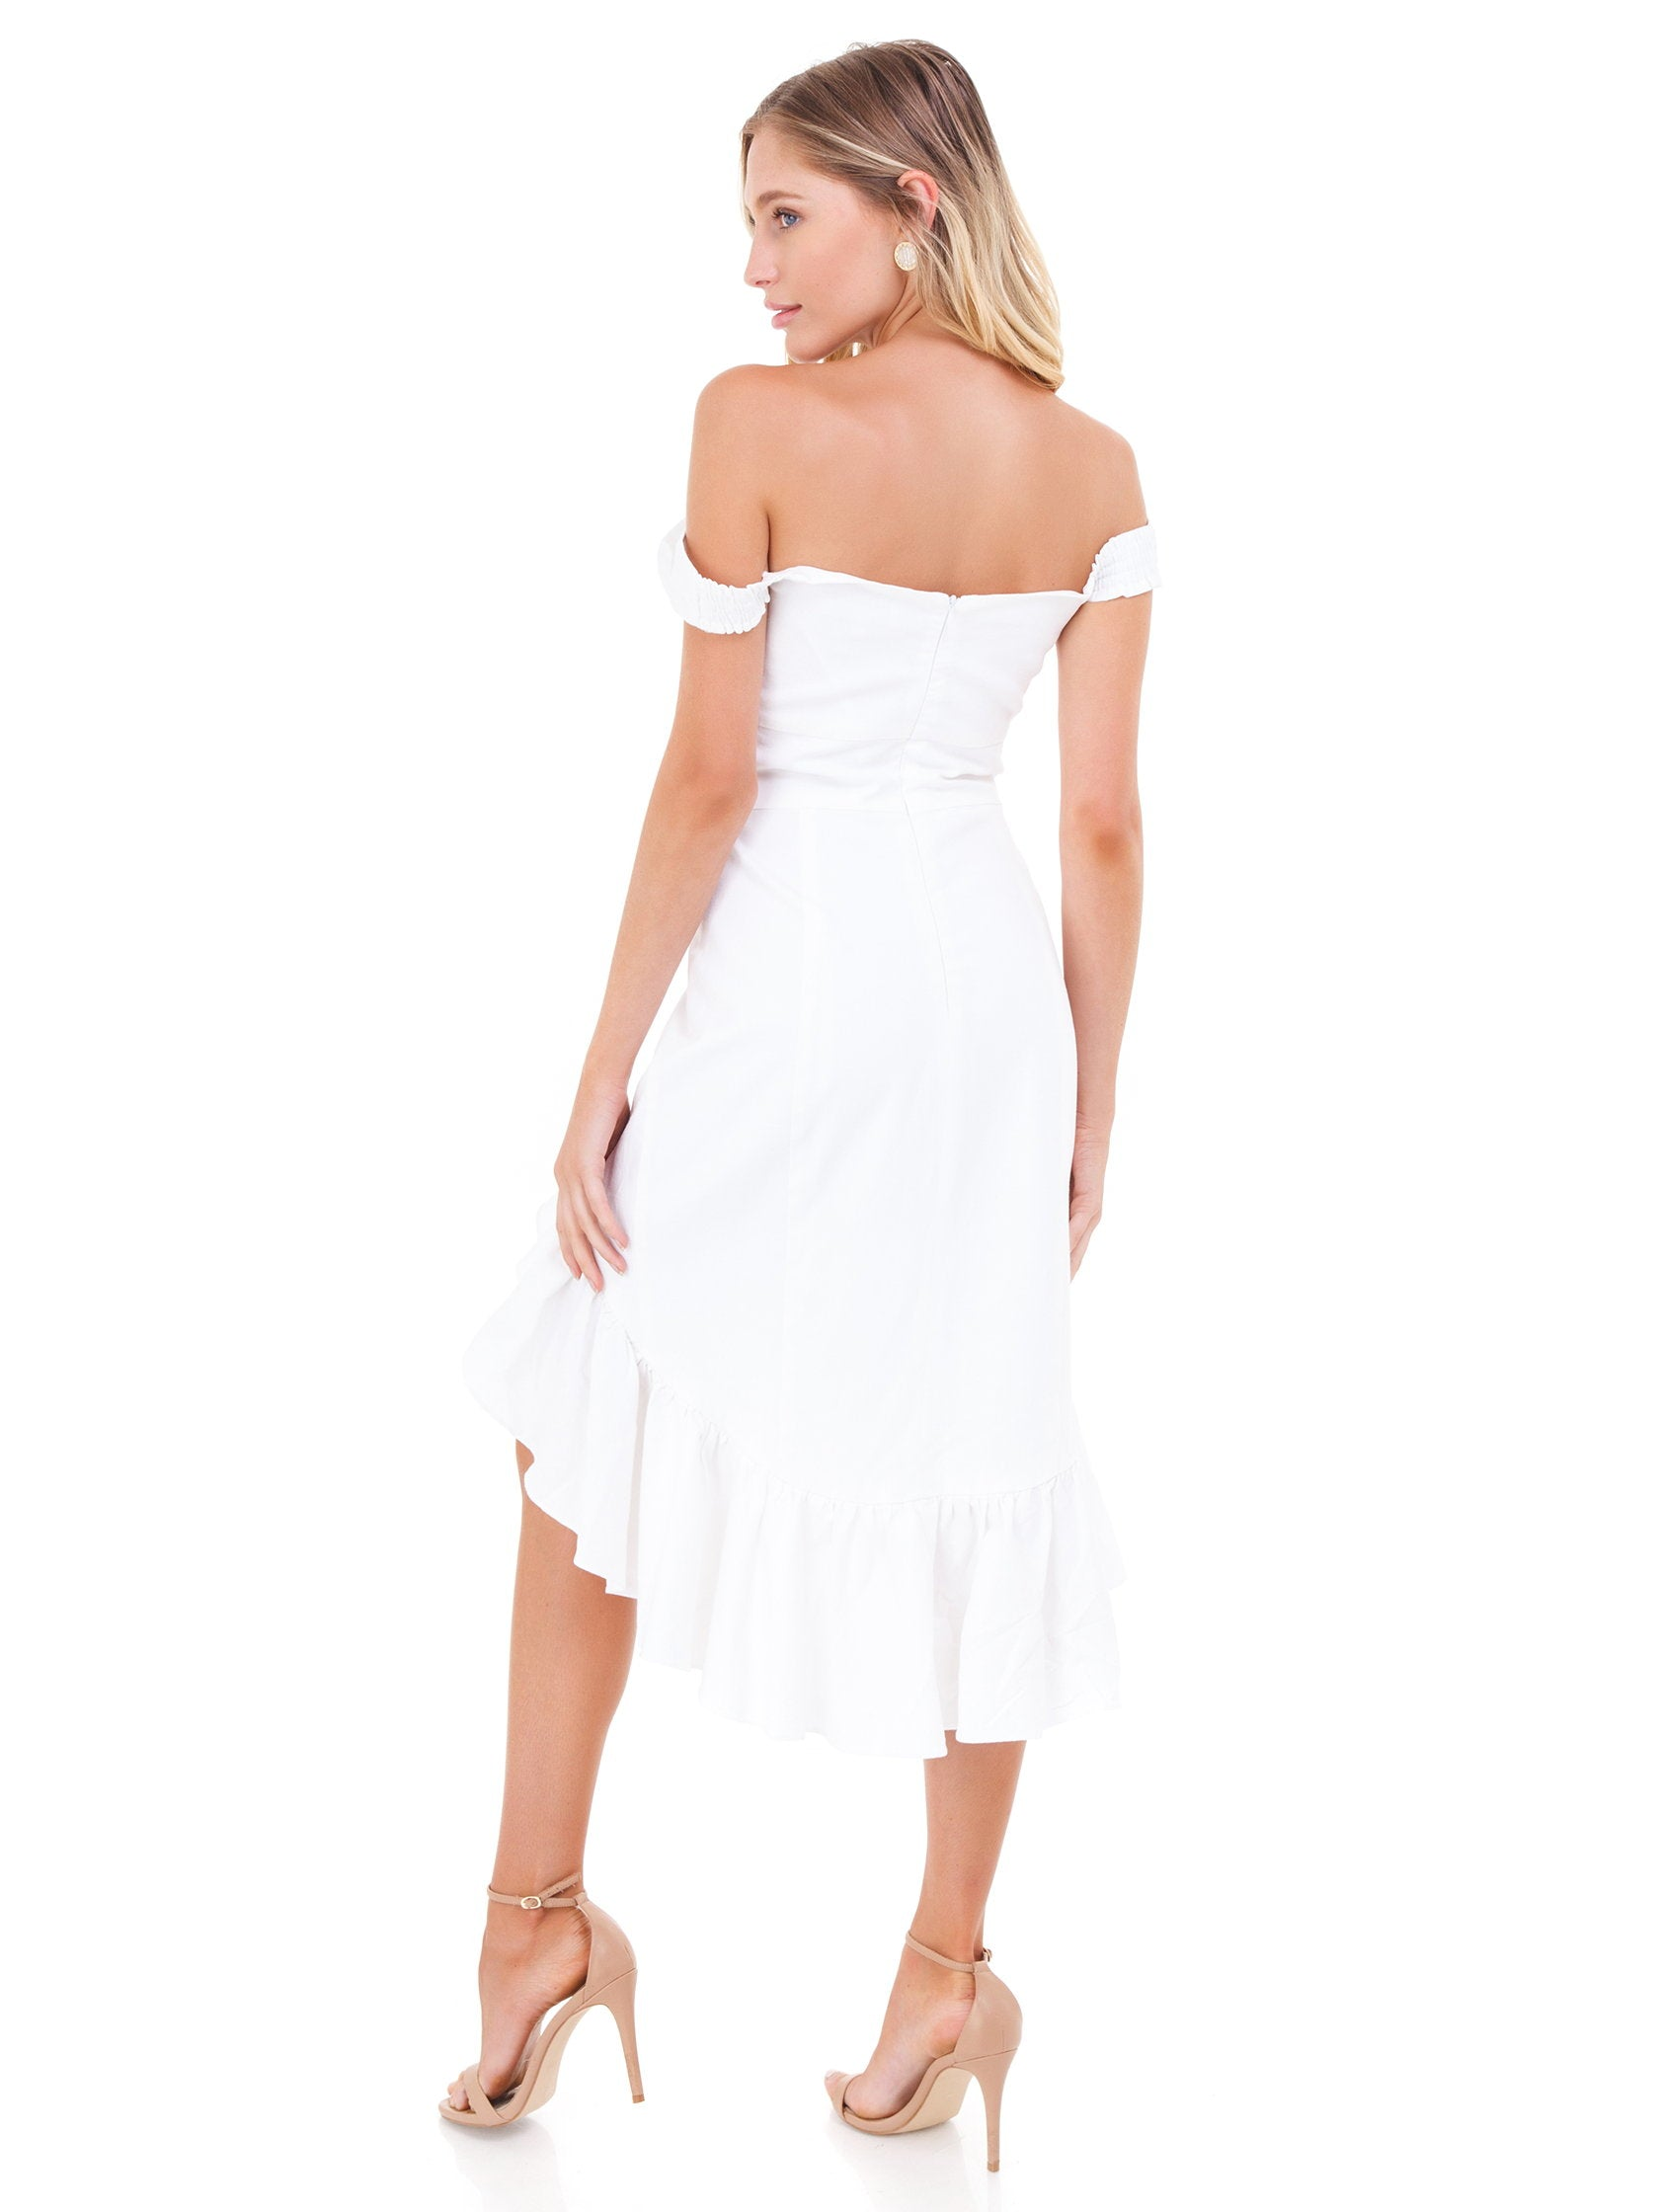 Women wearing a dress rental from WAYF called Genoa Off The Shoulder Dress